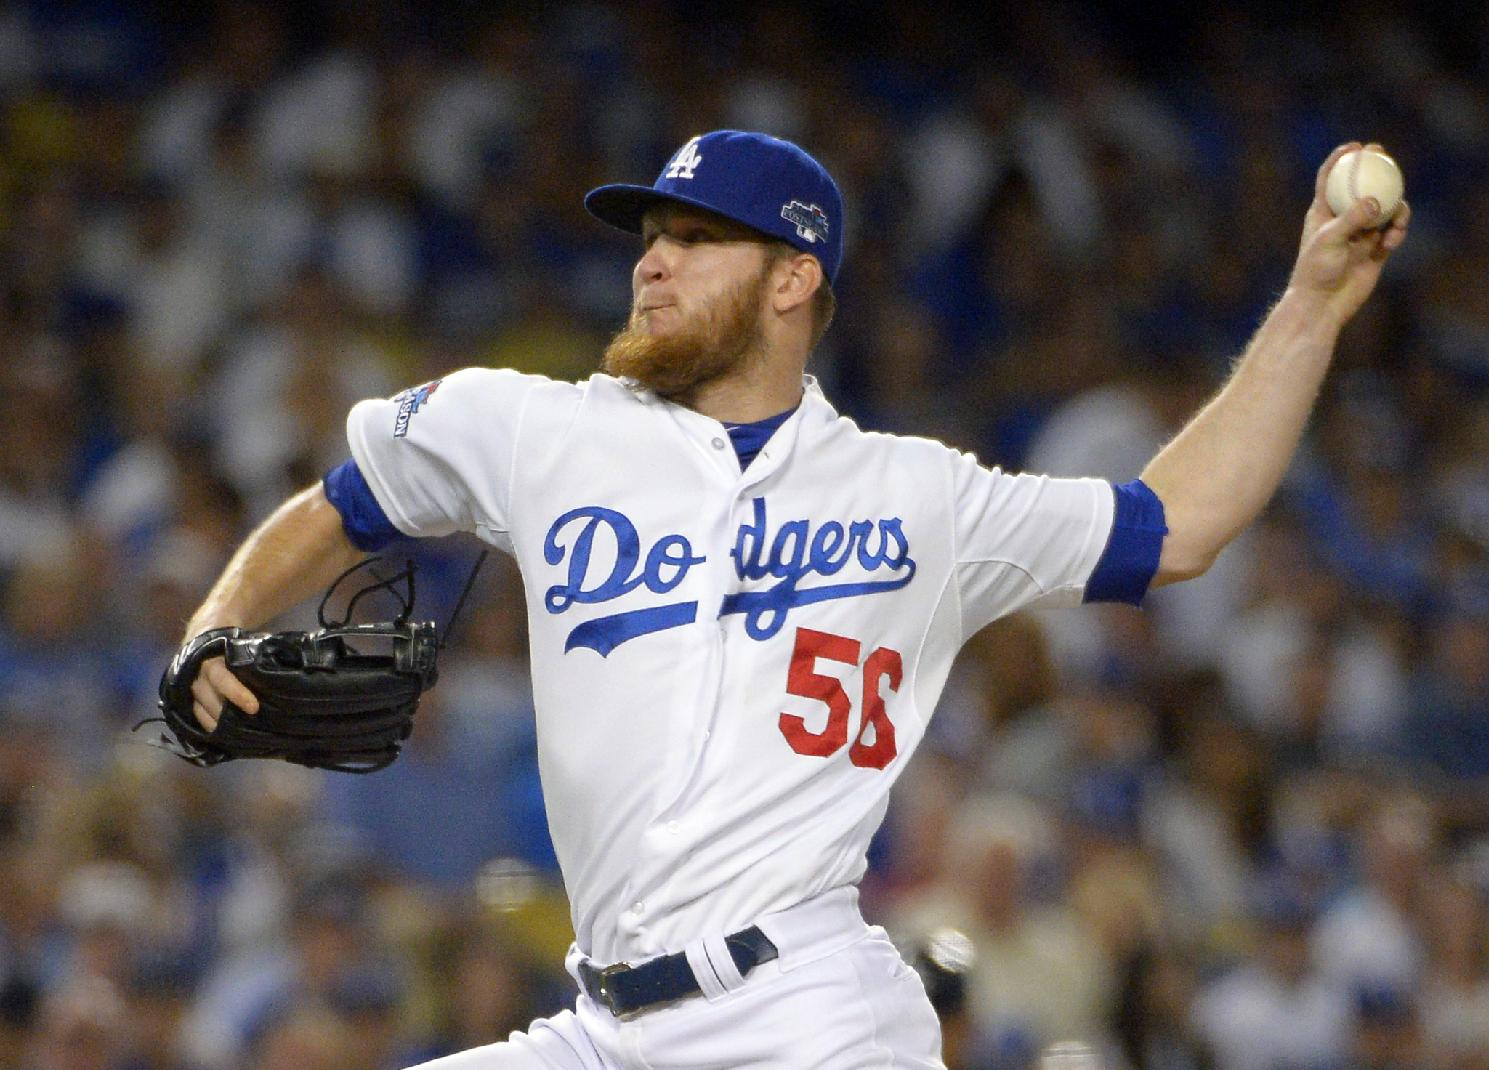 Dodgers sign 3 relievers, 3B Uribe